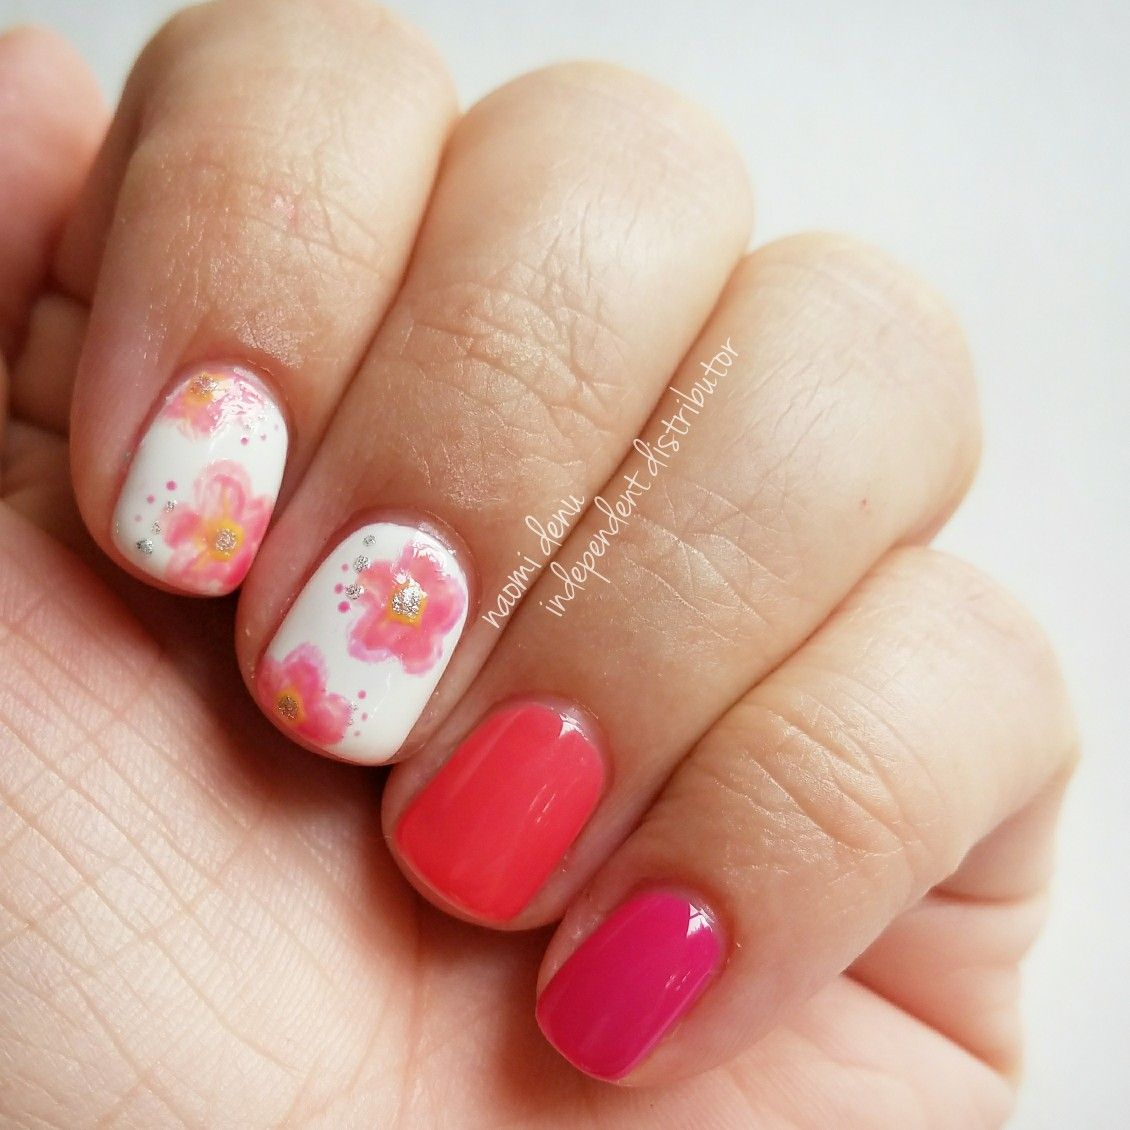 Floral nail art using GelMoment Lady in a Dress, GelMoment ...